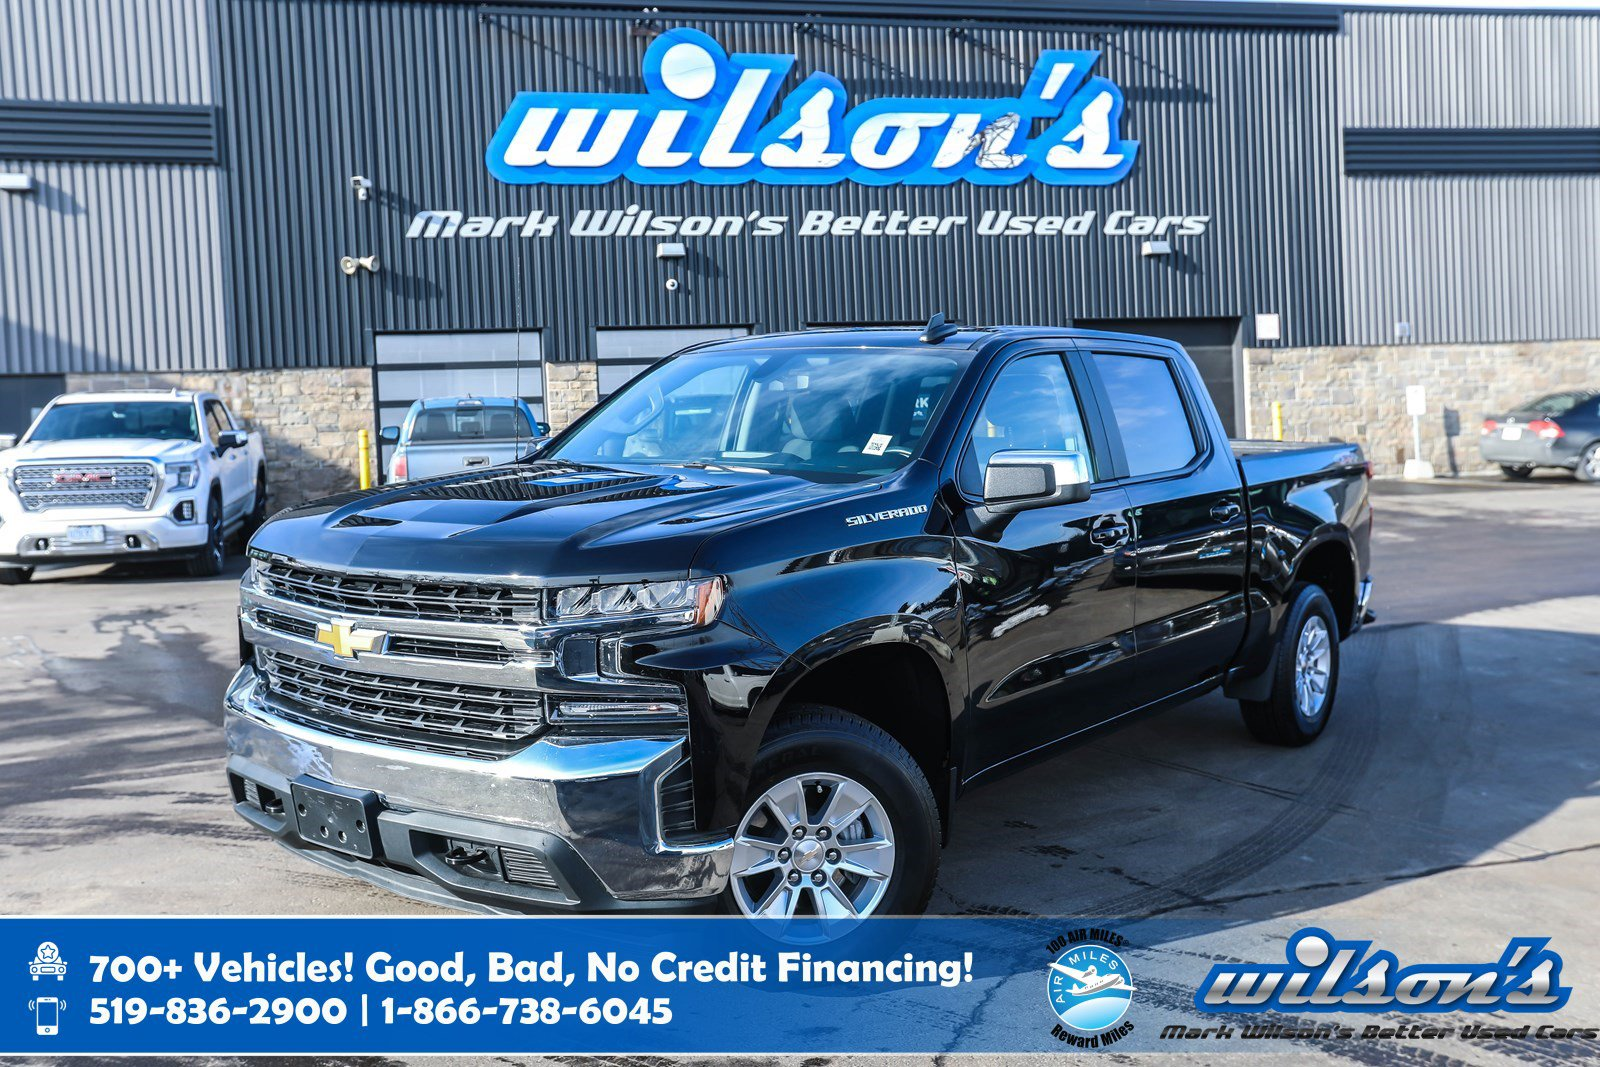 """Certified Pre-Owned 2019 Chevrolet Silverado 1500 LT Crew Cab 4x4, 8"""" Touchscreen, Android Auto + Apple CarPlay, Bluetooth and more!"""